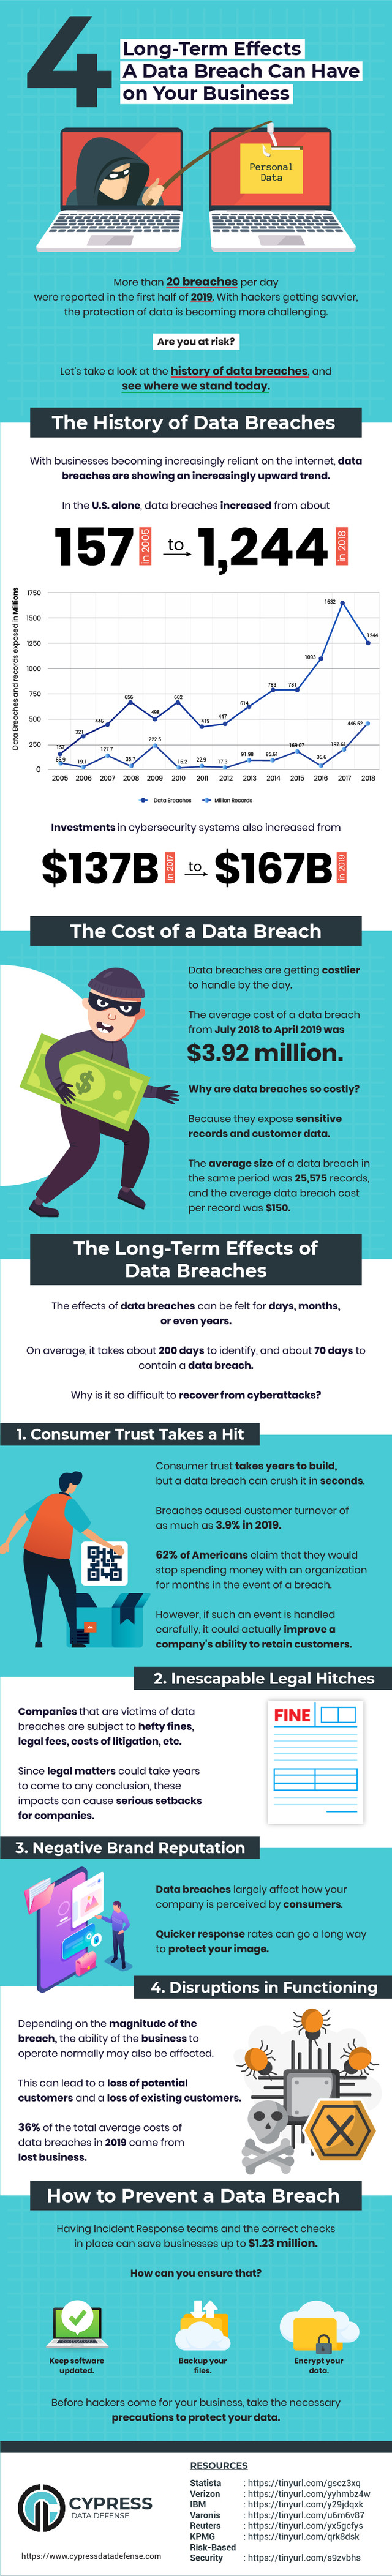 Effects a Data Breach Can Have on Your Business in the Long Term